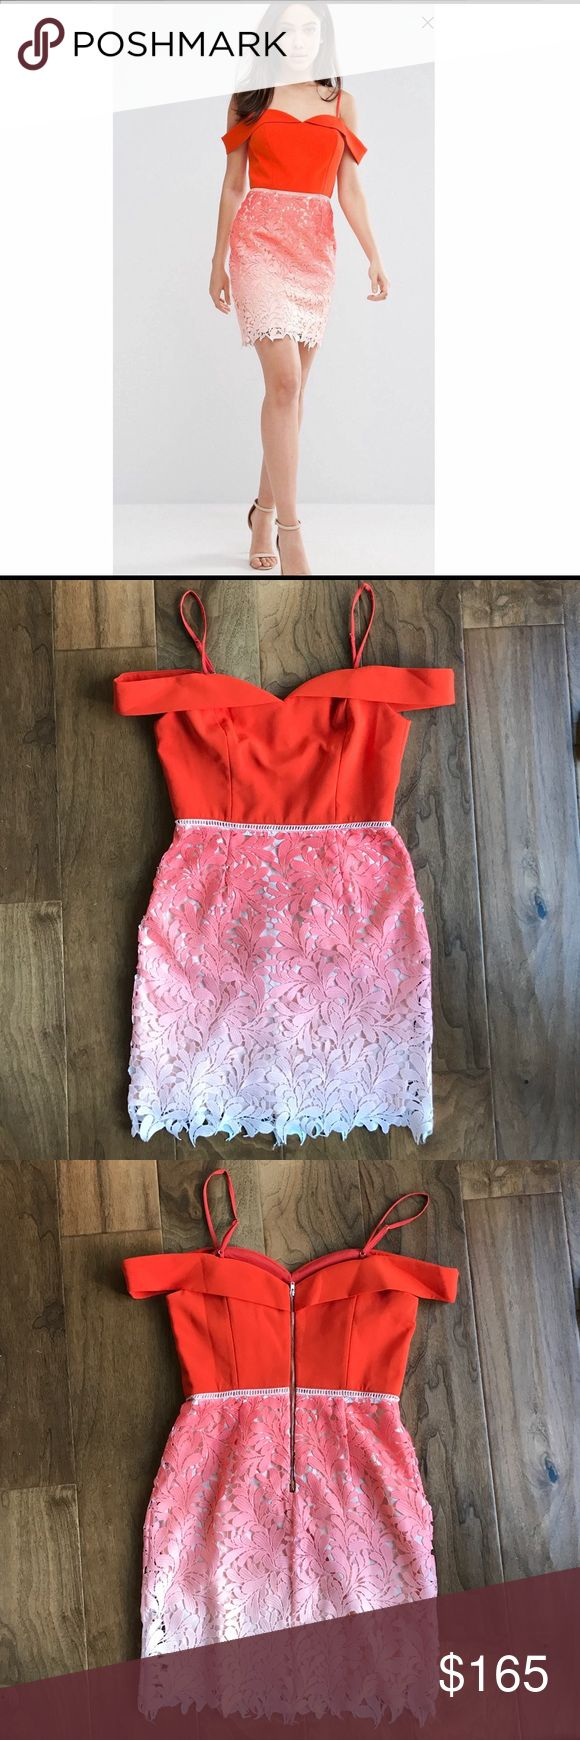 Adelyn Rae Orange ombré lace off shoulder dress Orange ombré lace off the shoulder dress. Never been worn, NWT! So cute off the shoulder dress with straps. I would say it fits S/M. I'm 135 and hour glass shape, I'm about the max size as a medium that could fit the dress. Also listing my nude Steve Madden straps heels that would match perfectly as shown in the stock photo! Adelyn Rae Dresses